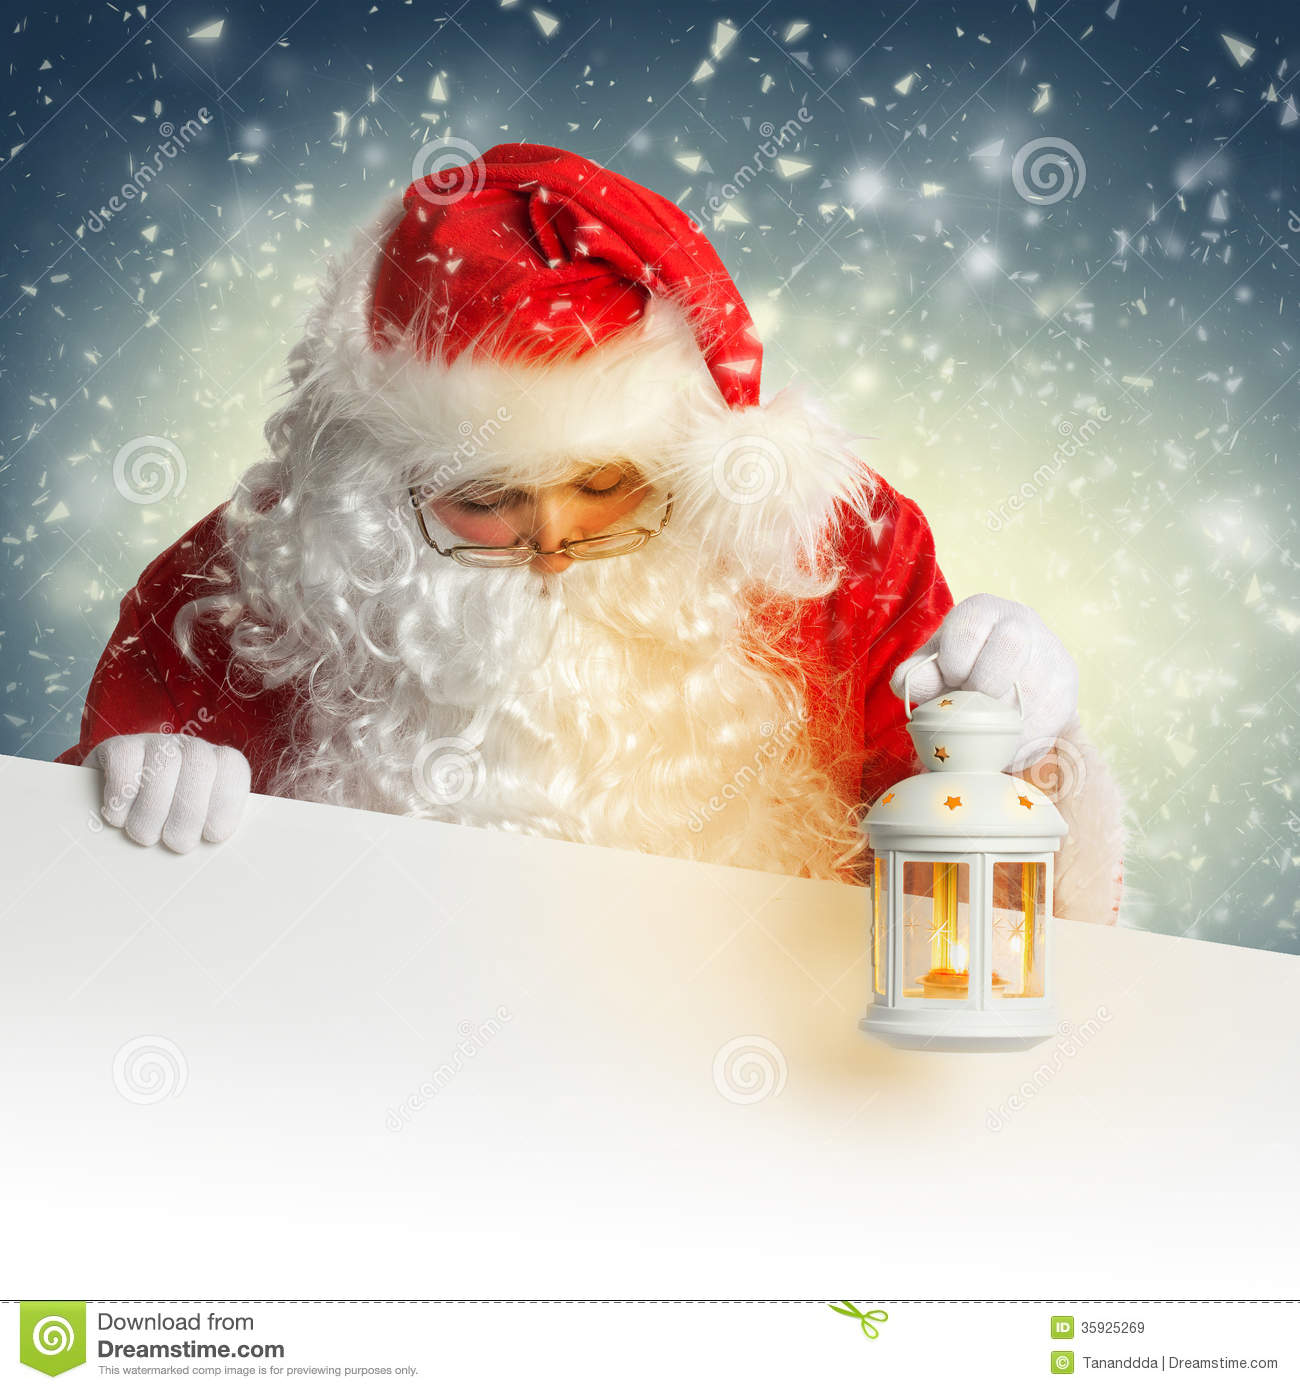 Santa claus looking down on white blank banner holding